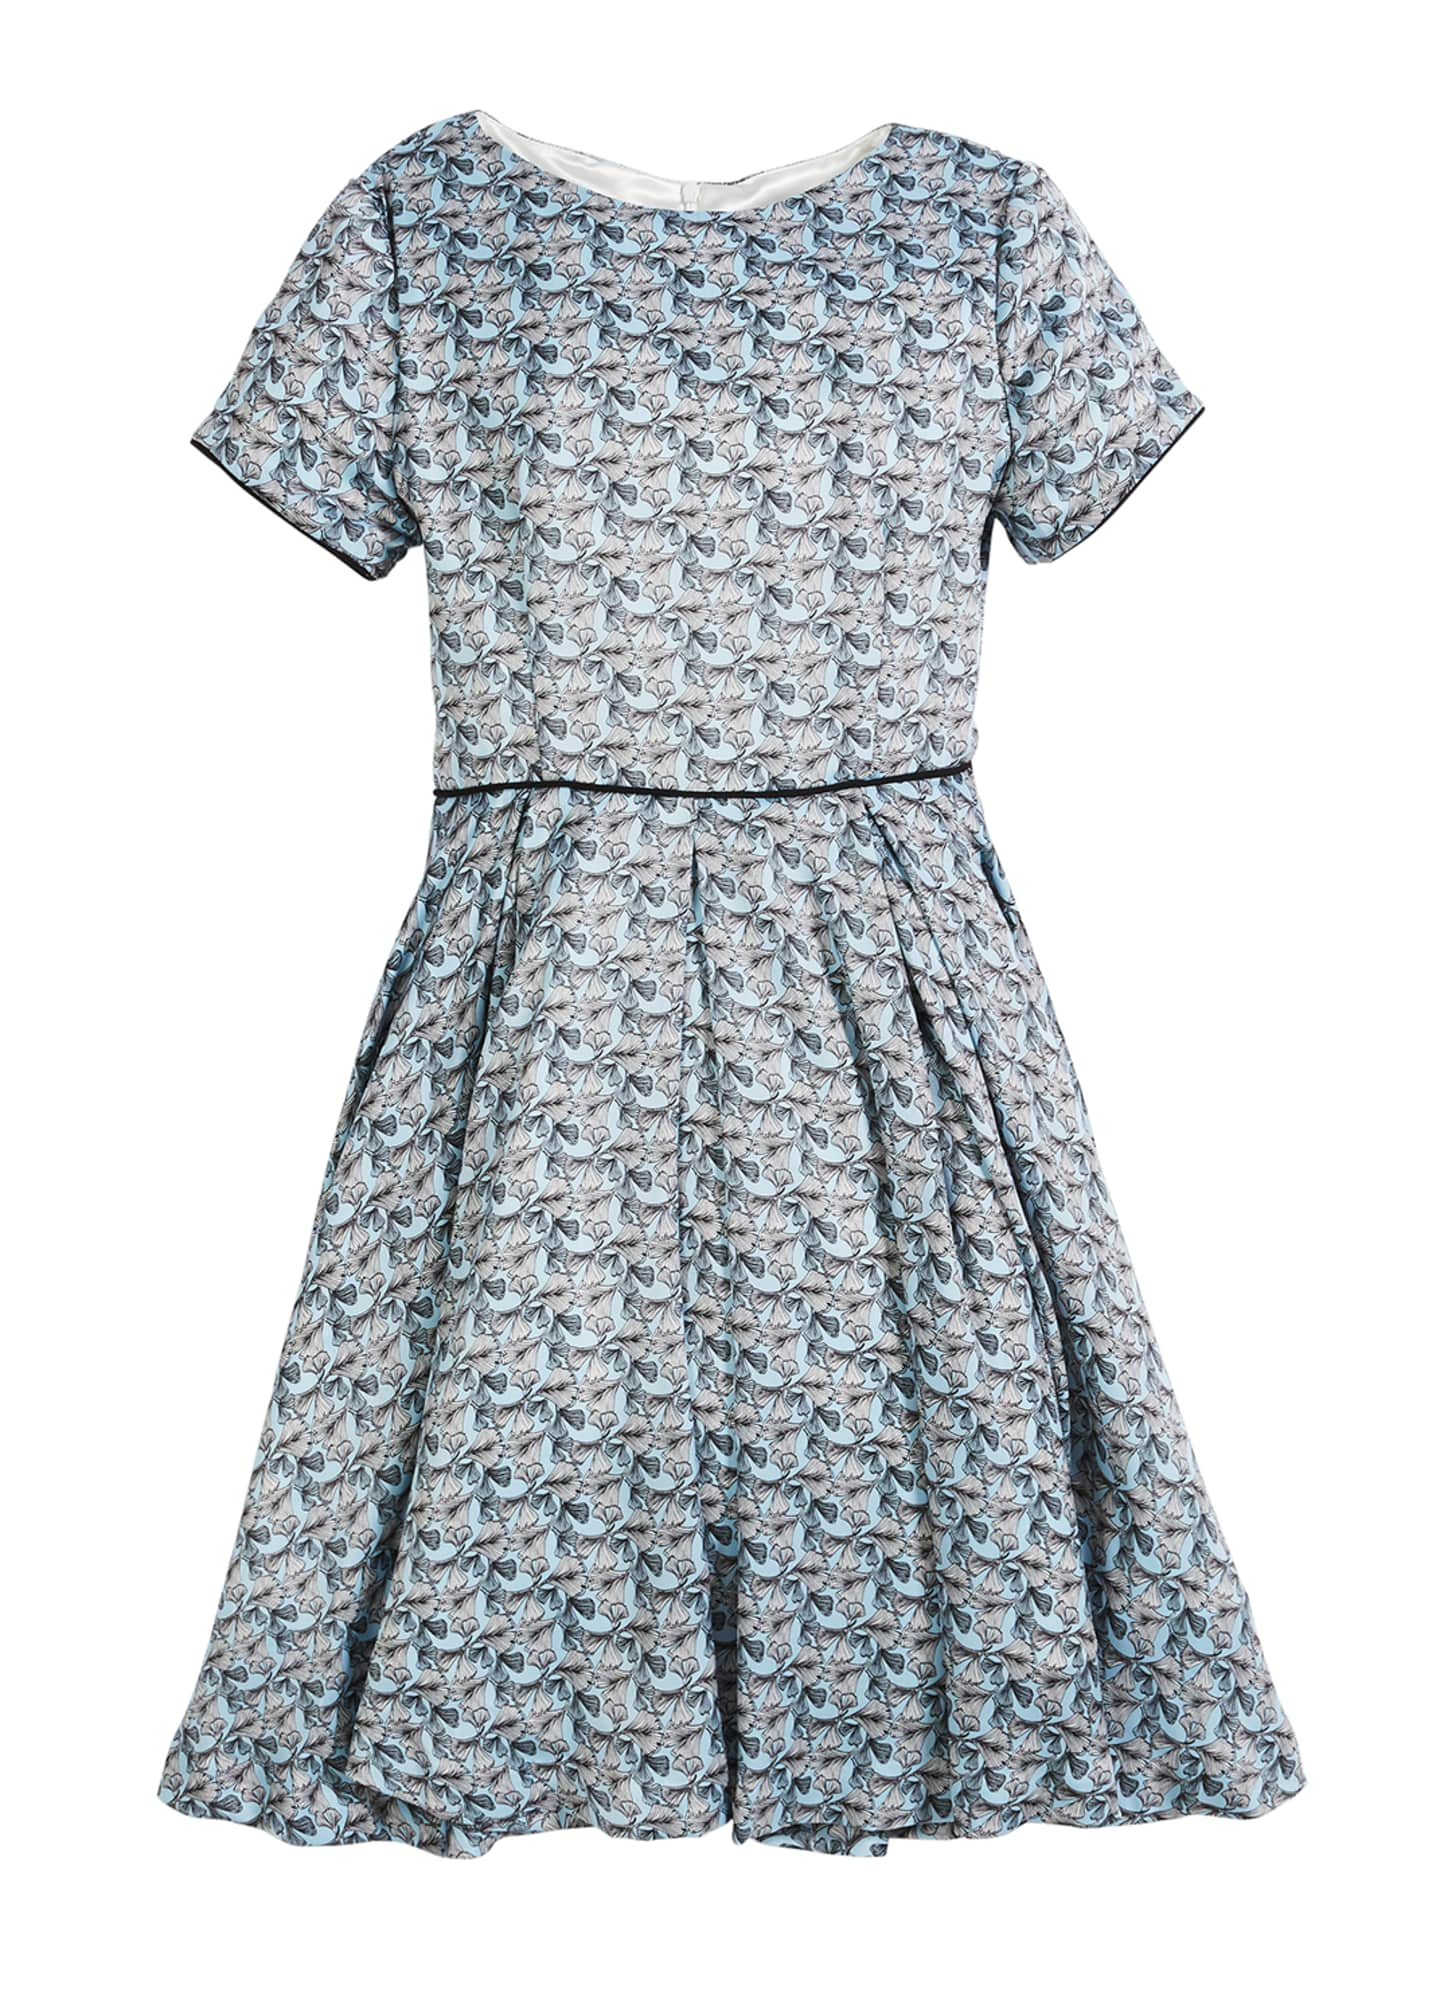 Helena Short-Sleeve Printed Dress, Size 2-6